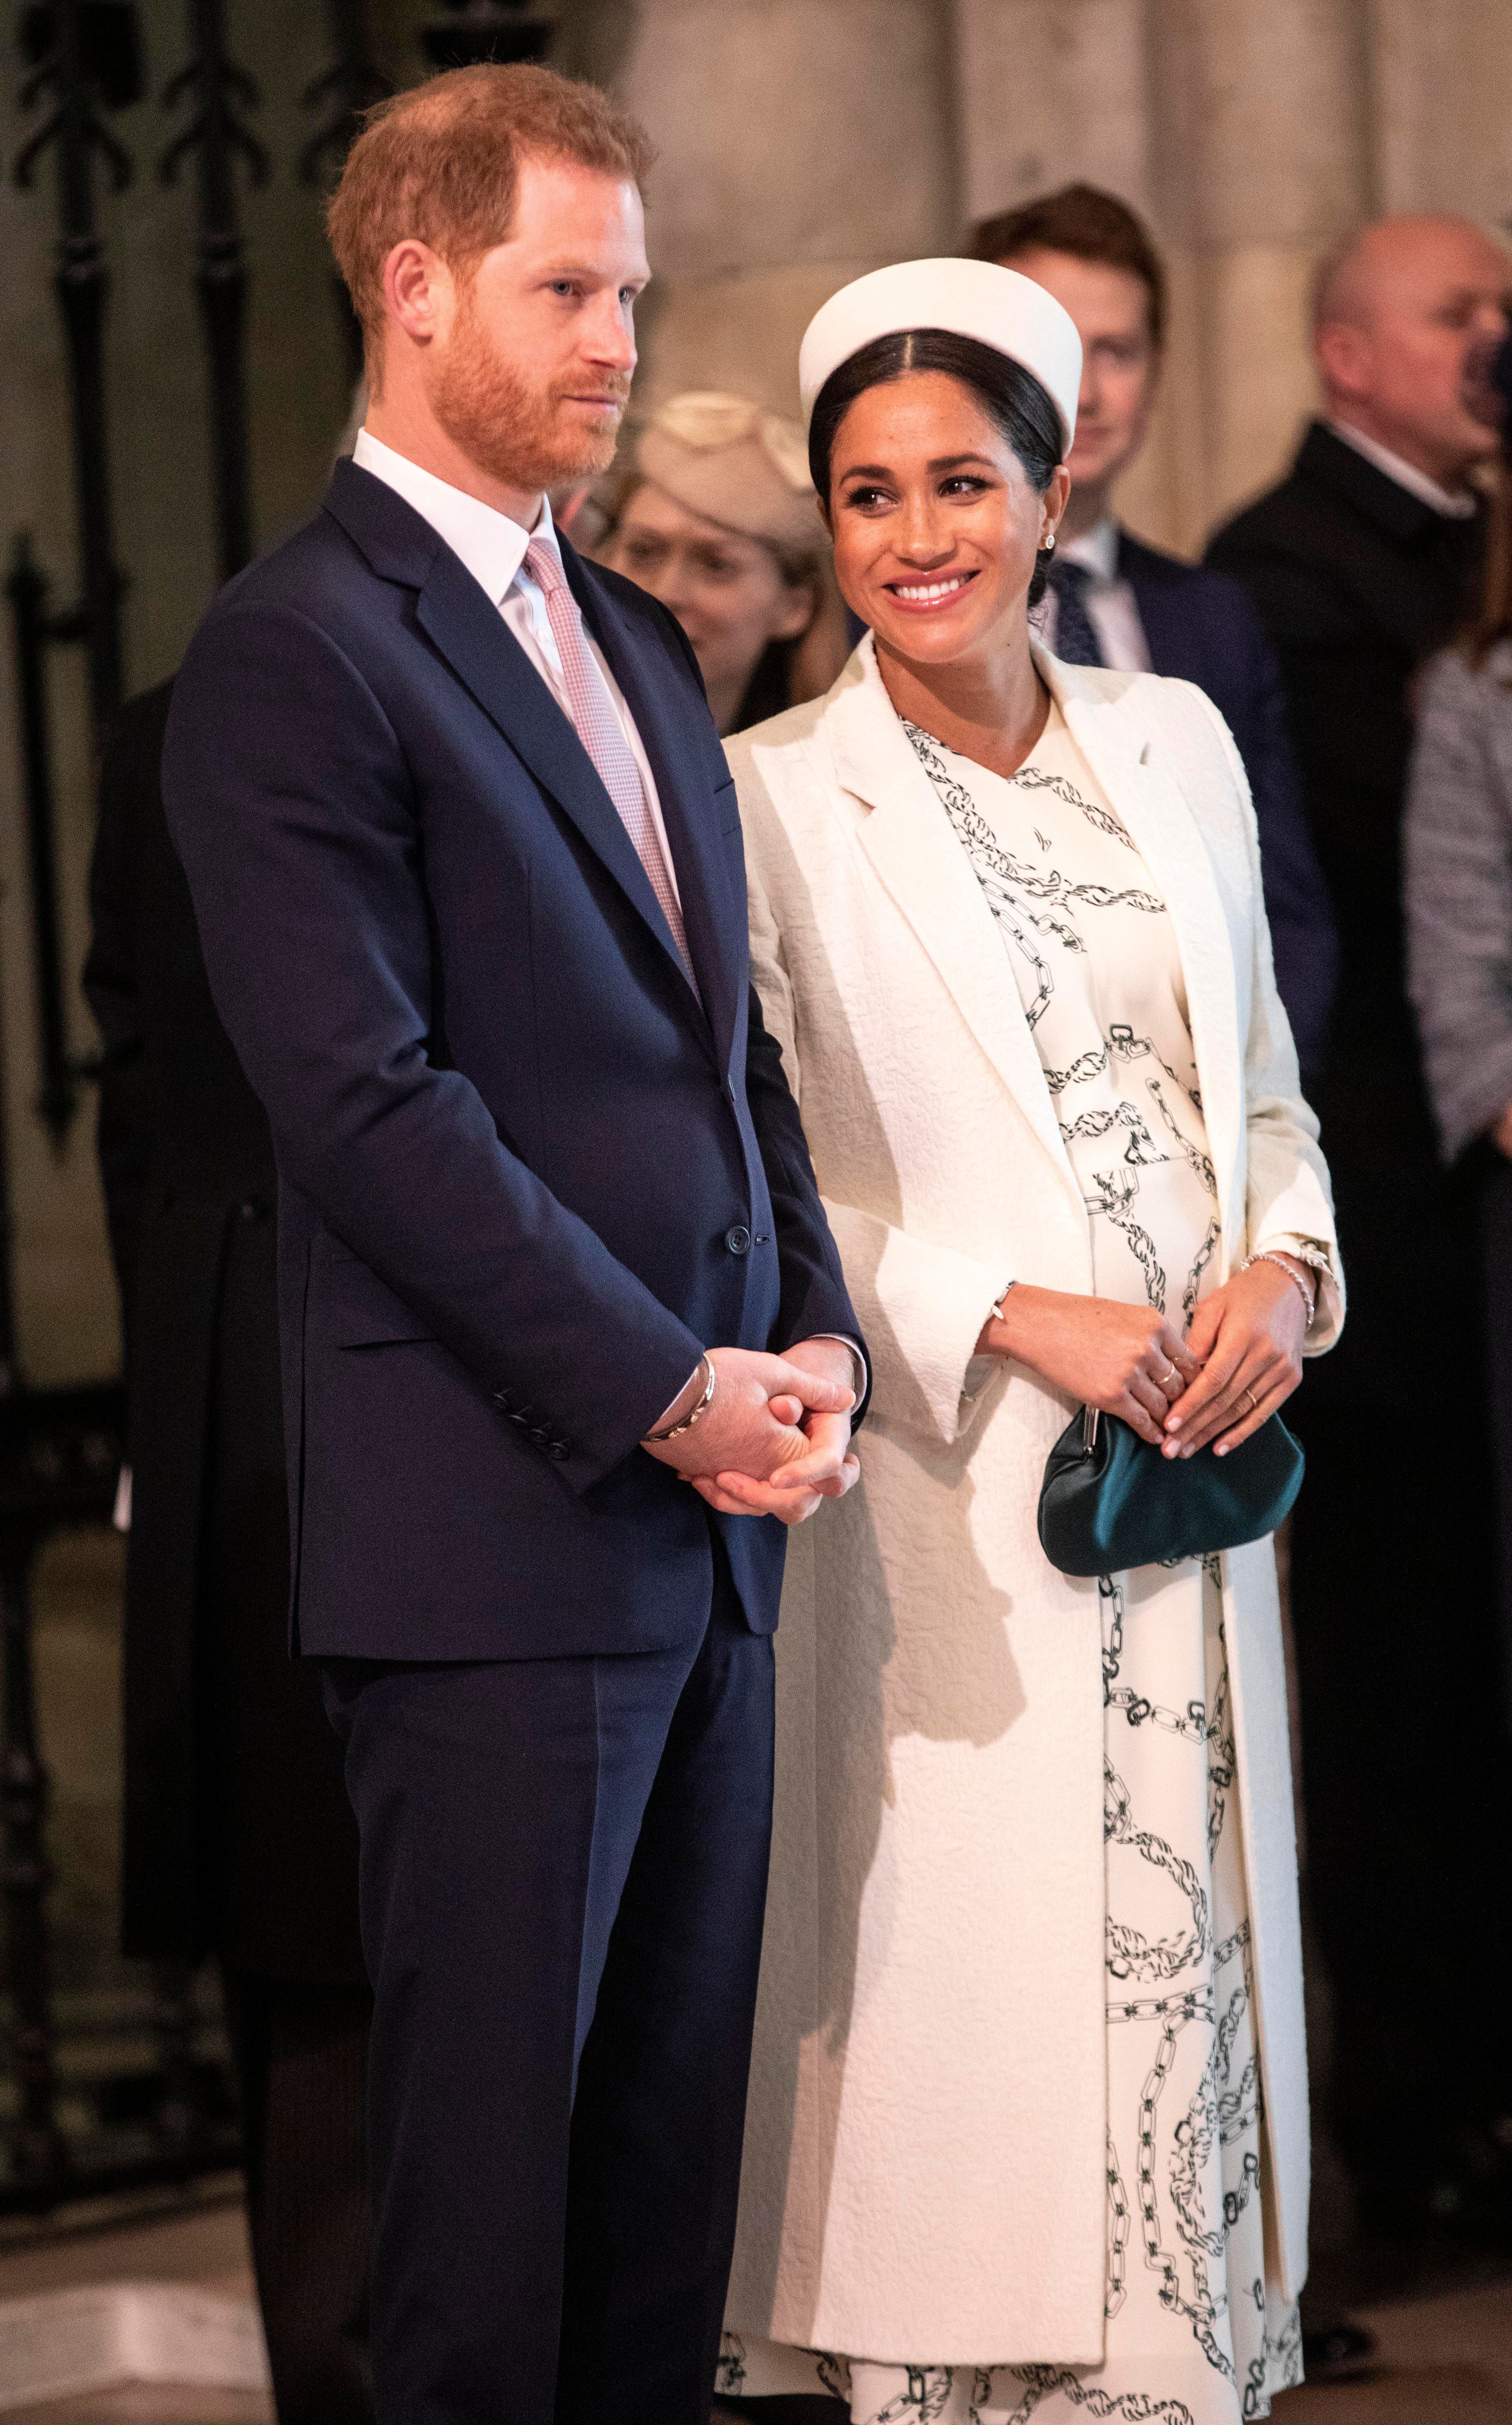 When Is Meghan Markle's Baby Due? Here's Everything We Know So